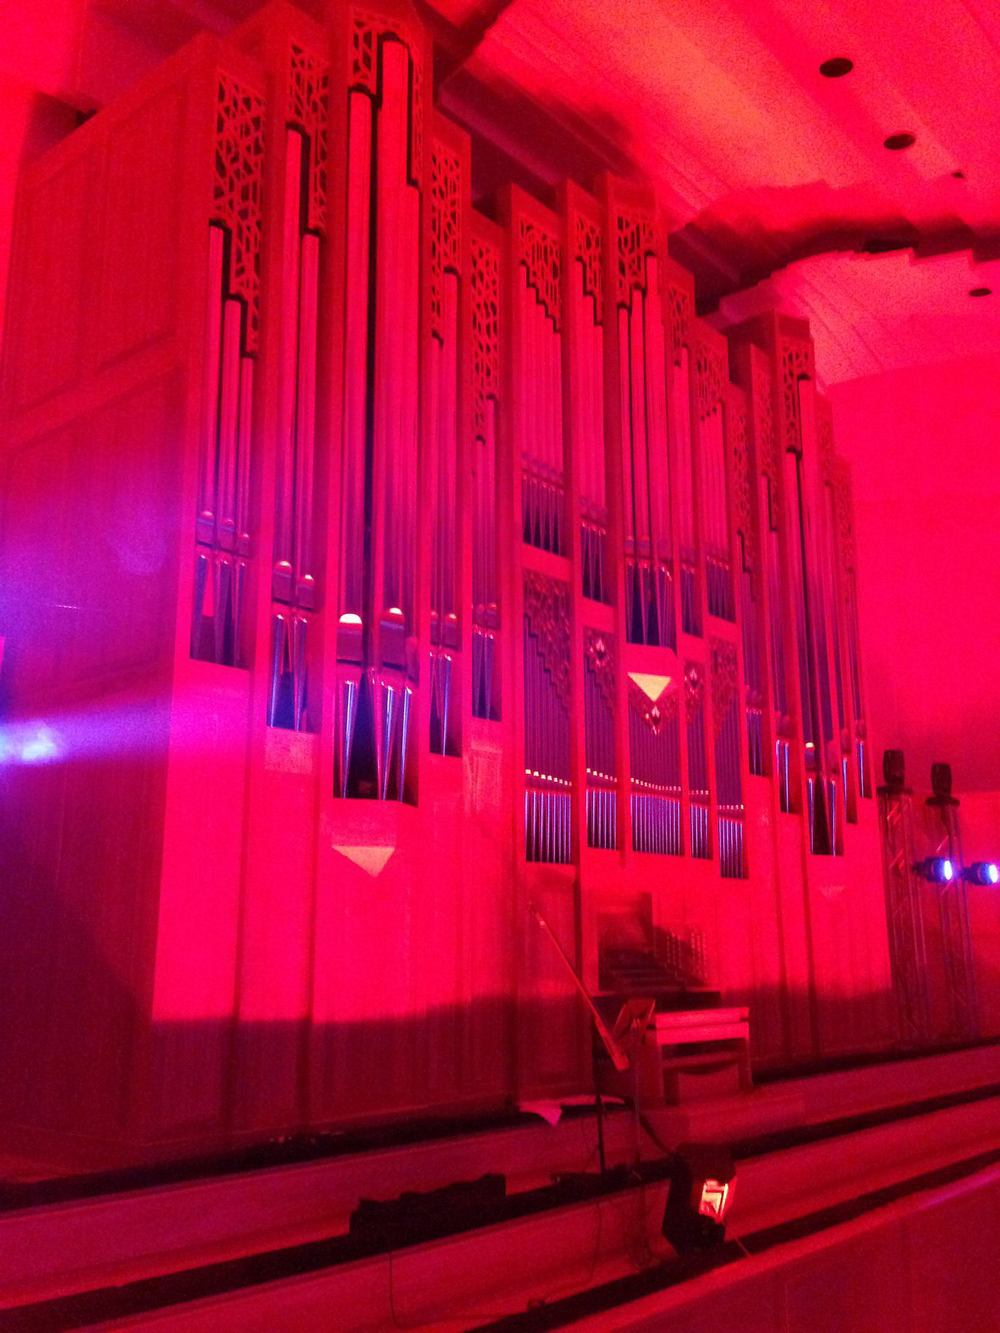 NOW-ID-Red Organ By Cole.JPG